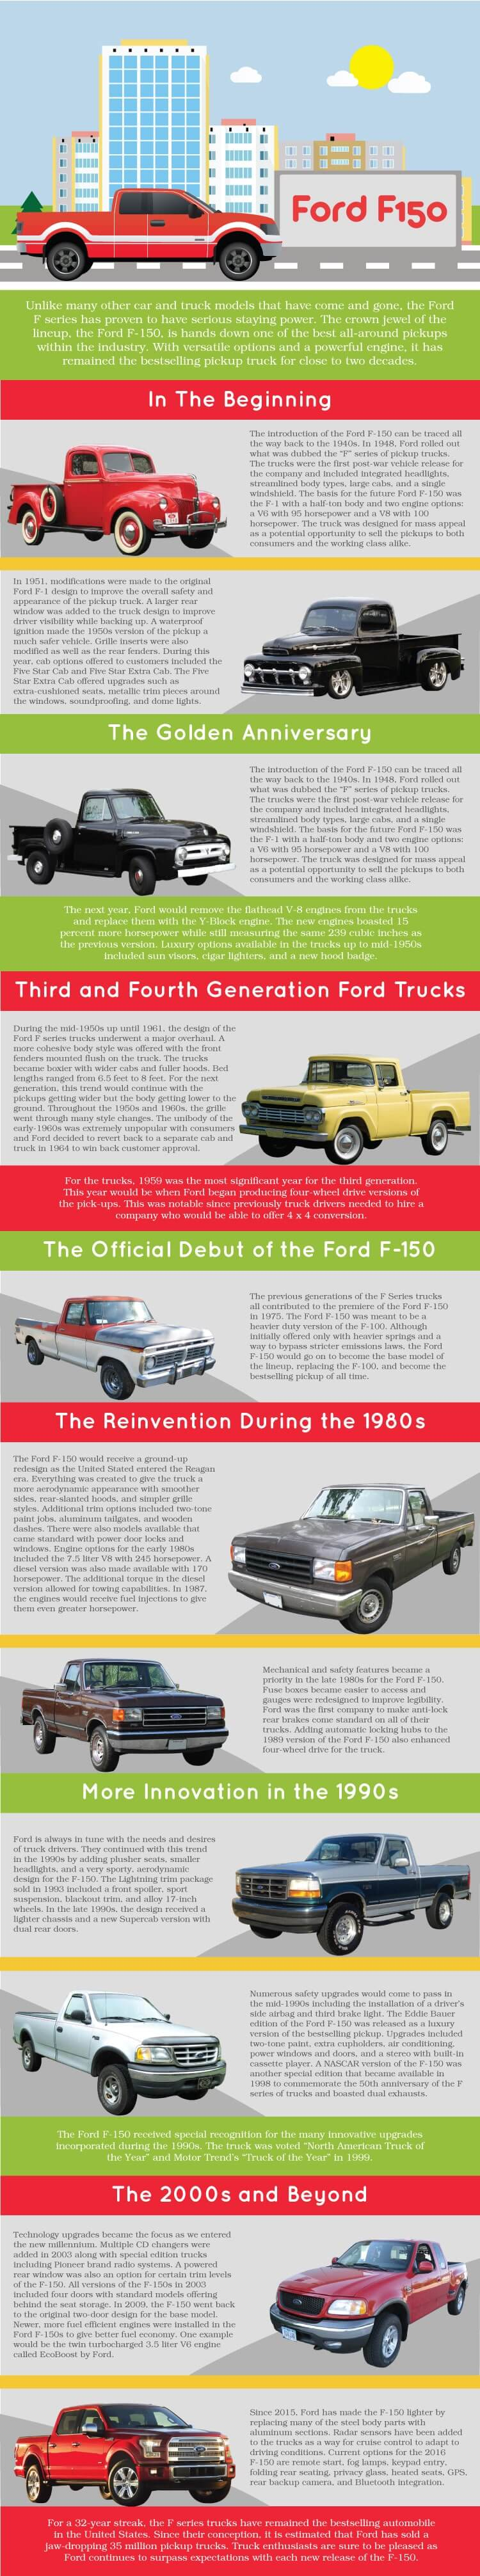 hight resolution of history of the ford f150